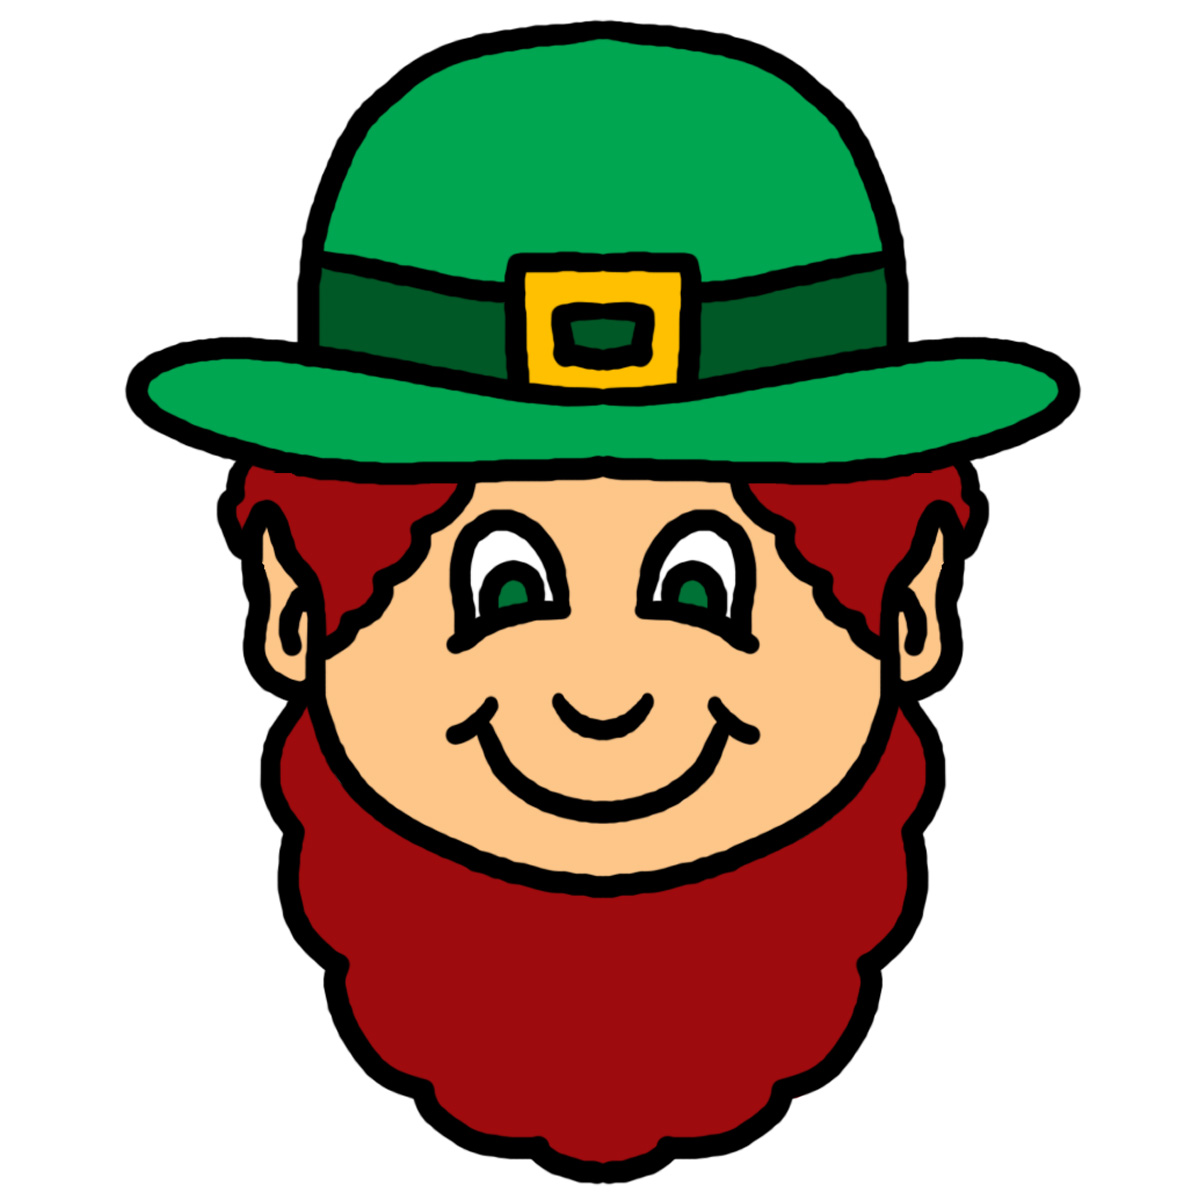 Free Cartoon Pictures Of Leprechauns, Download Free Clip Art.